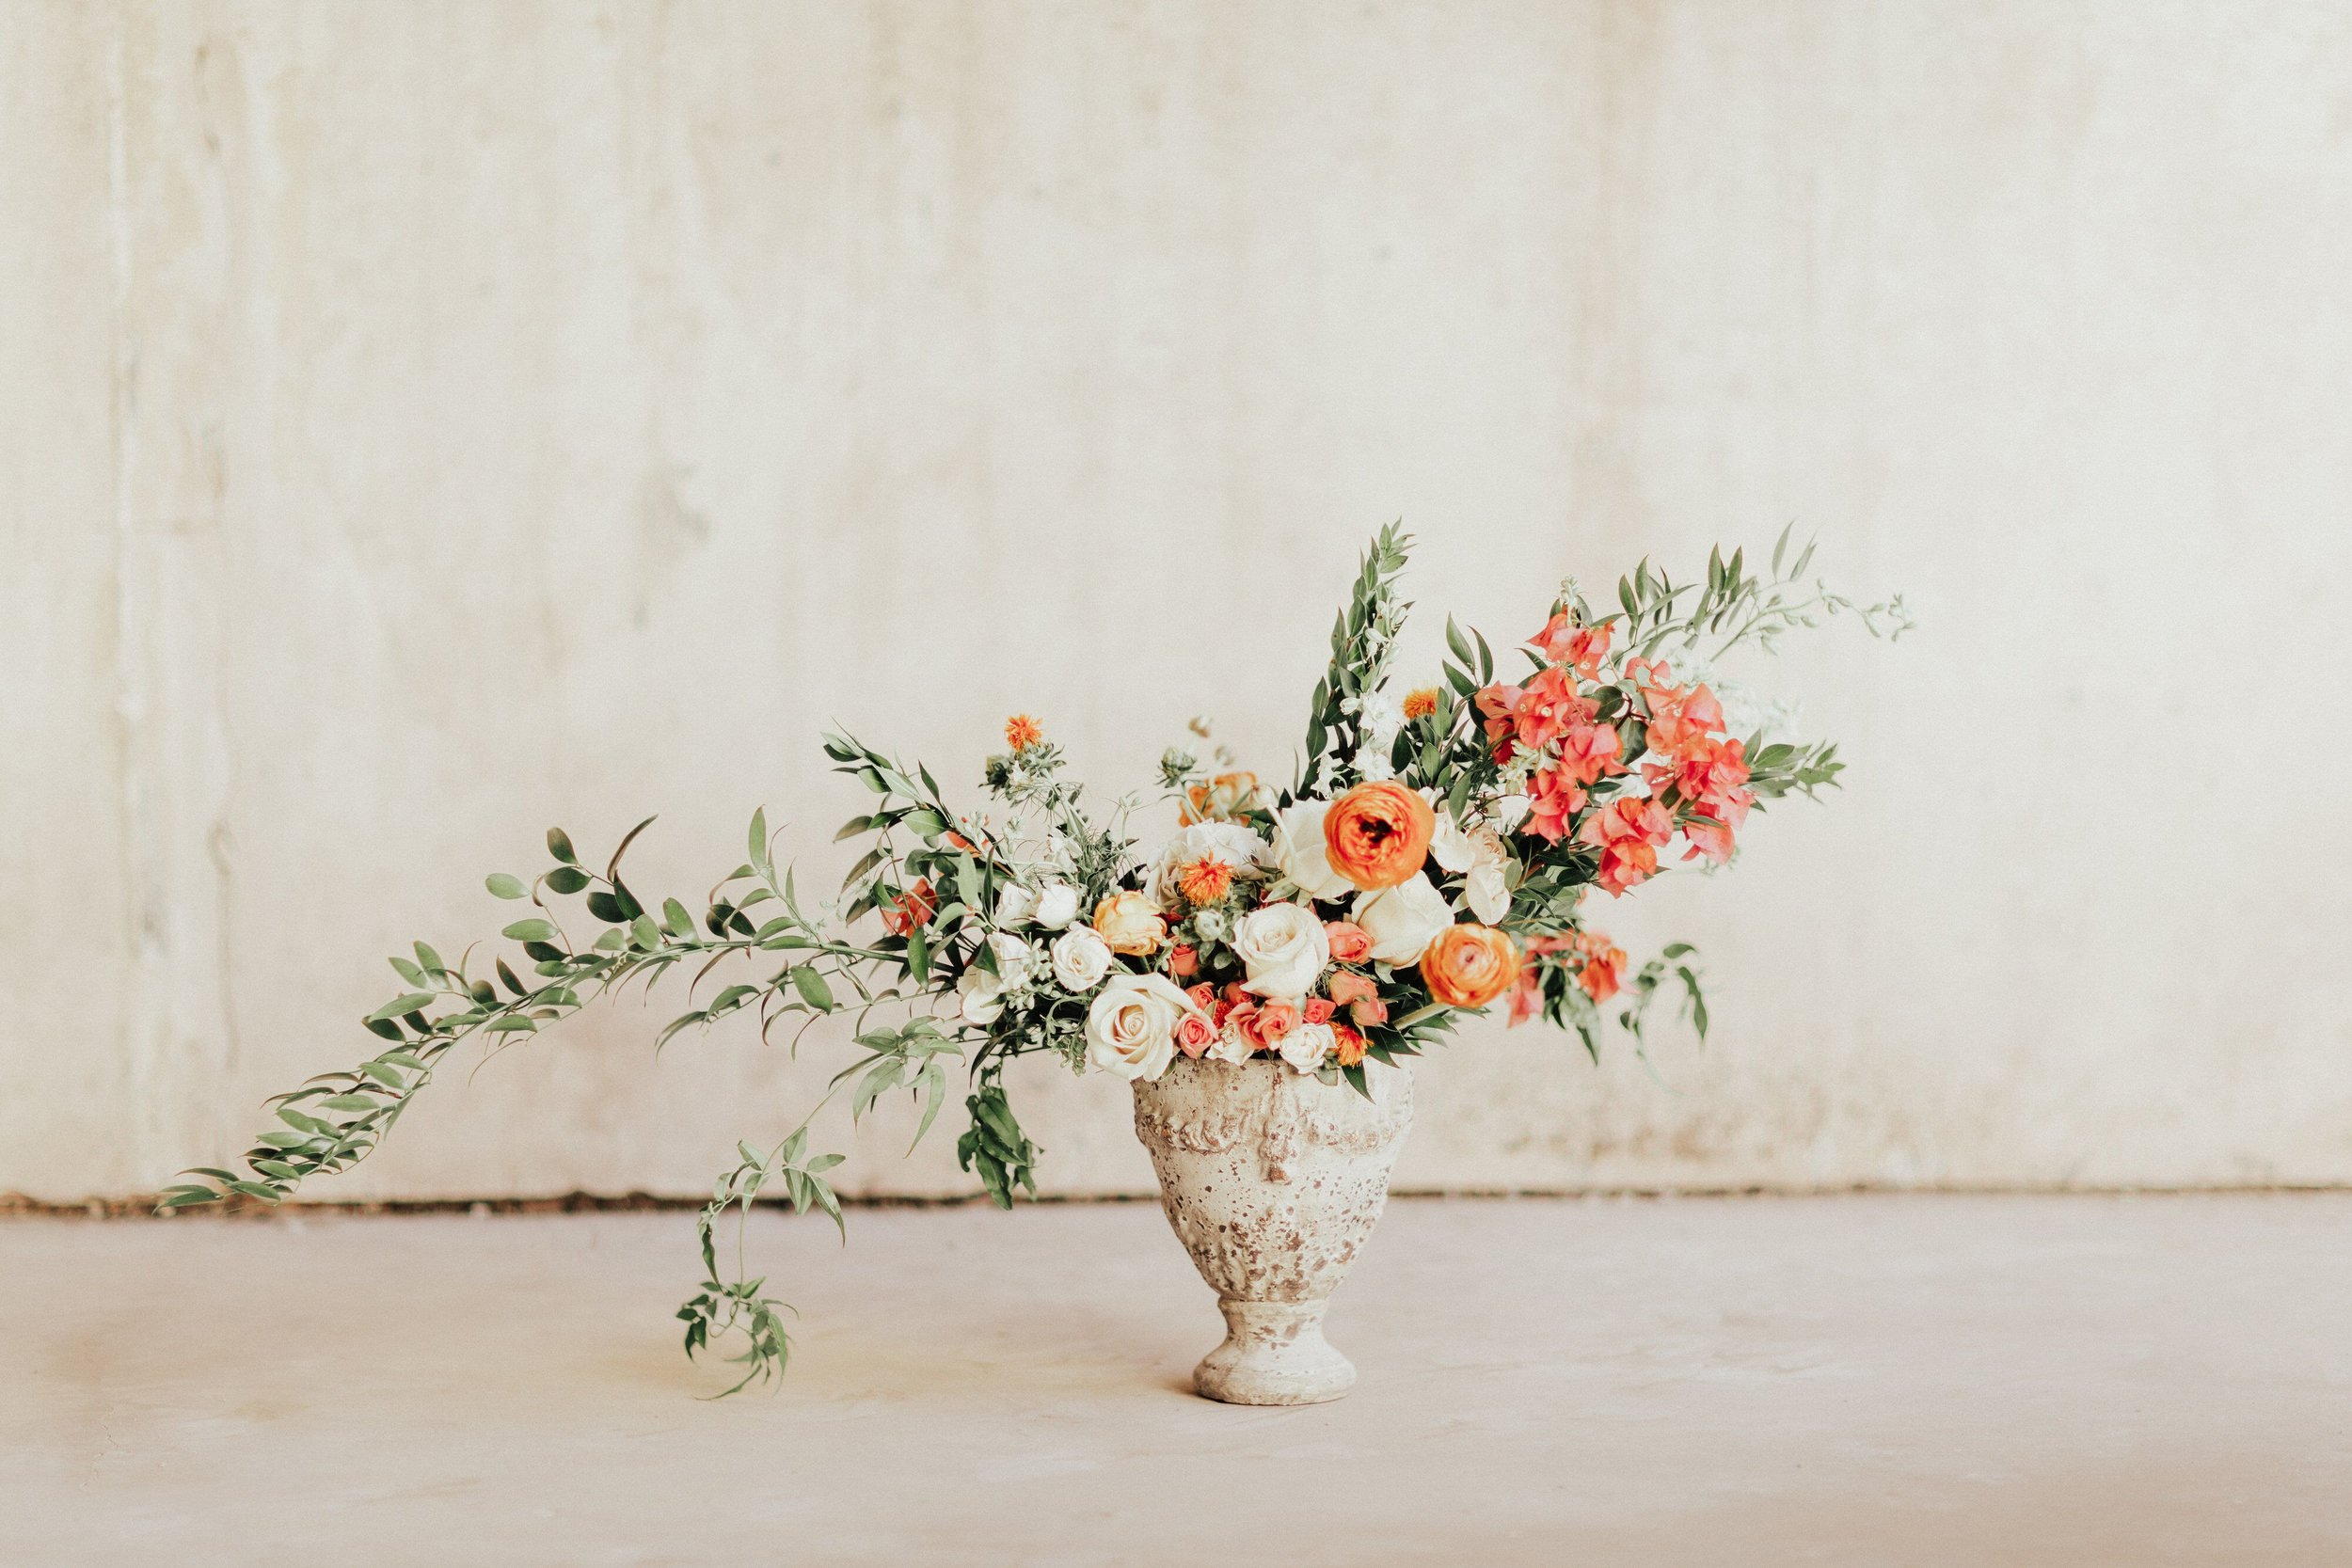 Wedding_florals_Spring_Flowers_Pink_Orange_White